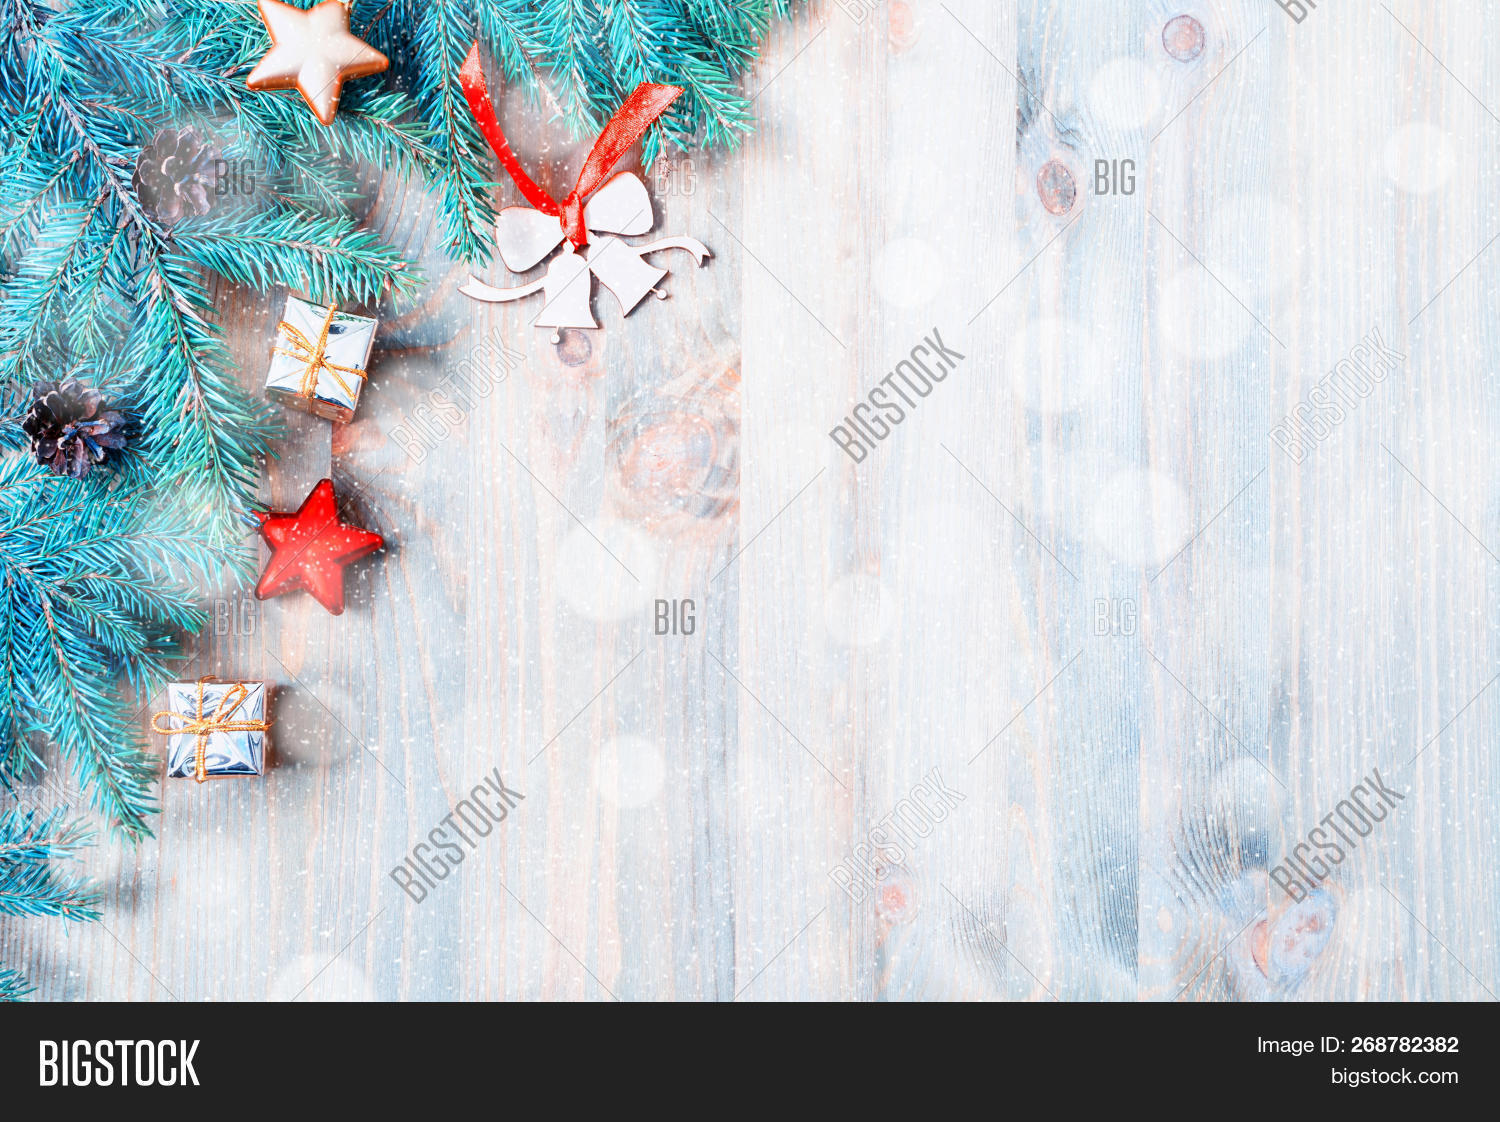 2019,background,Christmas-bell,blue,Christmas-branch,card,Christmas-celebration,christmas,Christmas-cone,Christmas-december,Christmas-decoration,eve,festive,fir,flat,Christmas-frame,free,Christmas-gift,golden,Christmas-greeting,happy-Christmas,holiday,Christmas-invitation,lay,Christmas-object,Christmas-paper,postcard,Christmas-present,red,snow,Christmas-snowflake,snowy,space,Christmas-texture,Christmas-top,Christmas-tree,Christmas-view,winter,wooden,xmas,New-year,new-year-background,Christmas-card,Christmas-background,Christmas-pattern,Christmas-illustration,Christmas-design,Christmas-postcard,Christmas-composition